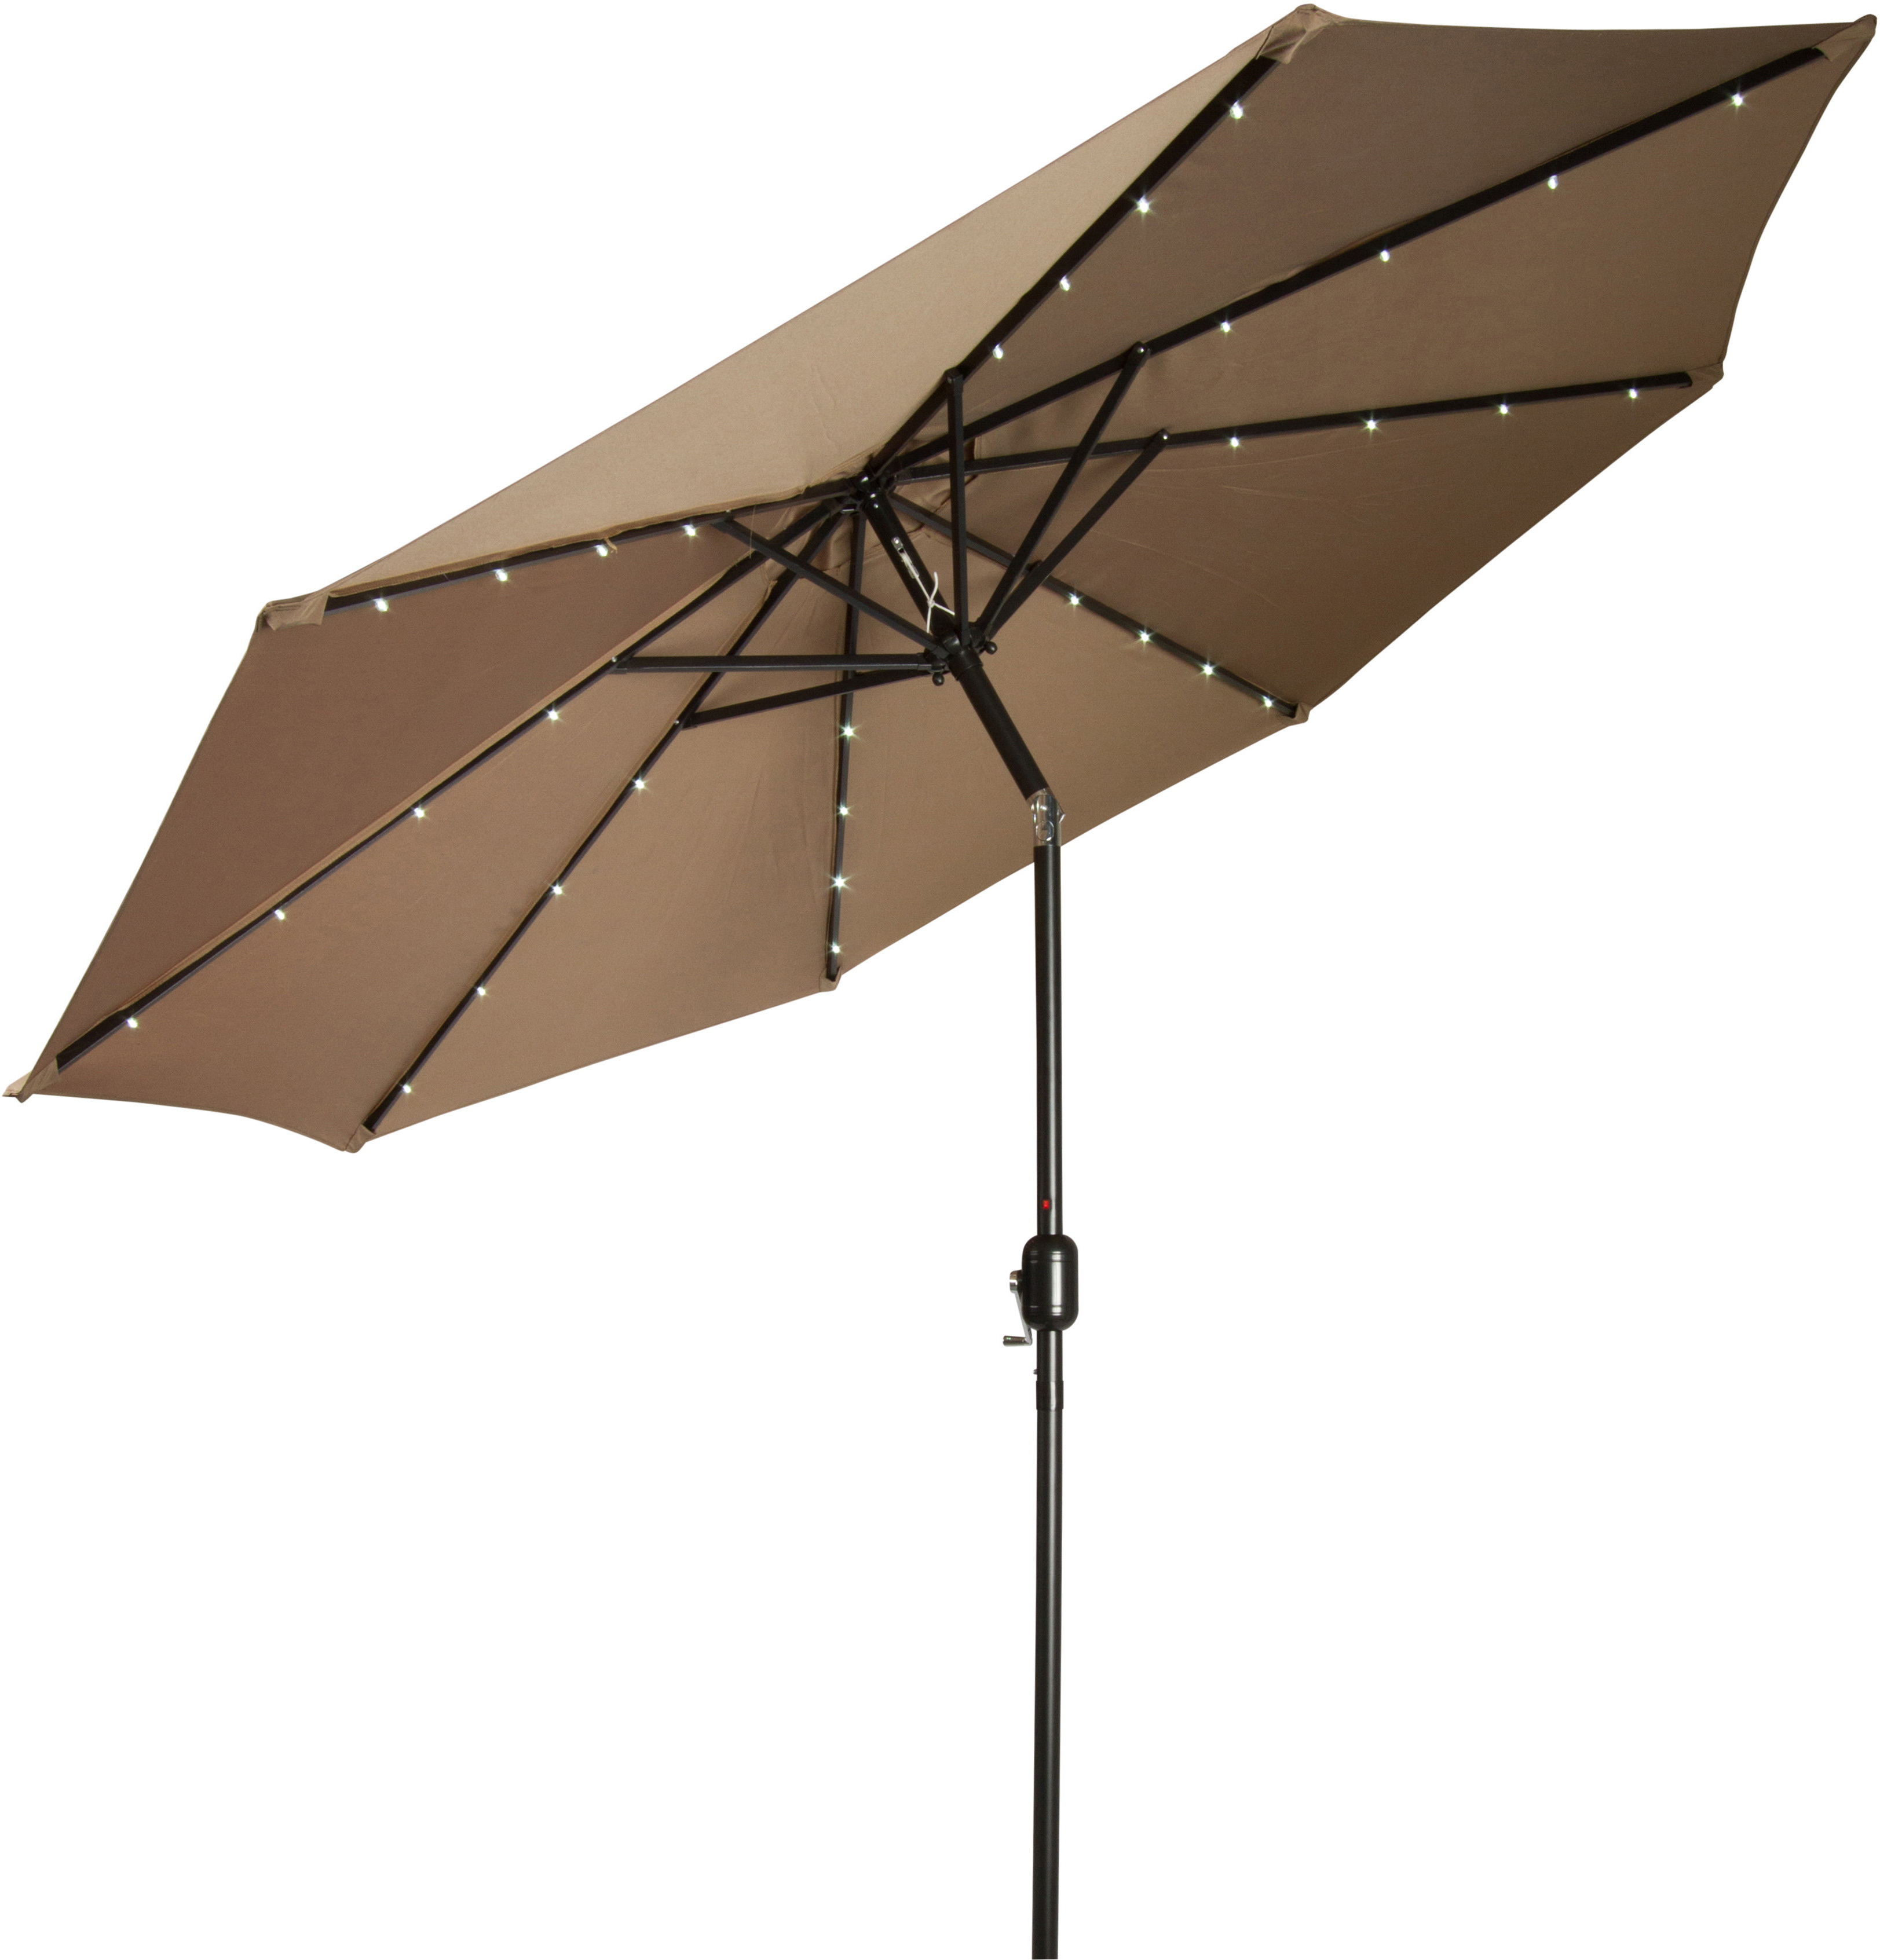 Mcdougal Market Umbrellas Within Most Popular Woll 9' Lighted Market Umbrella (View 18 of 20)